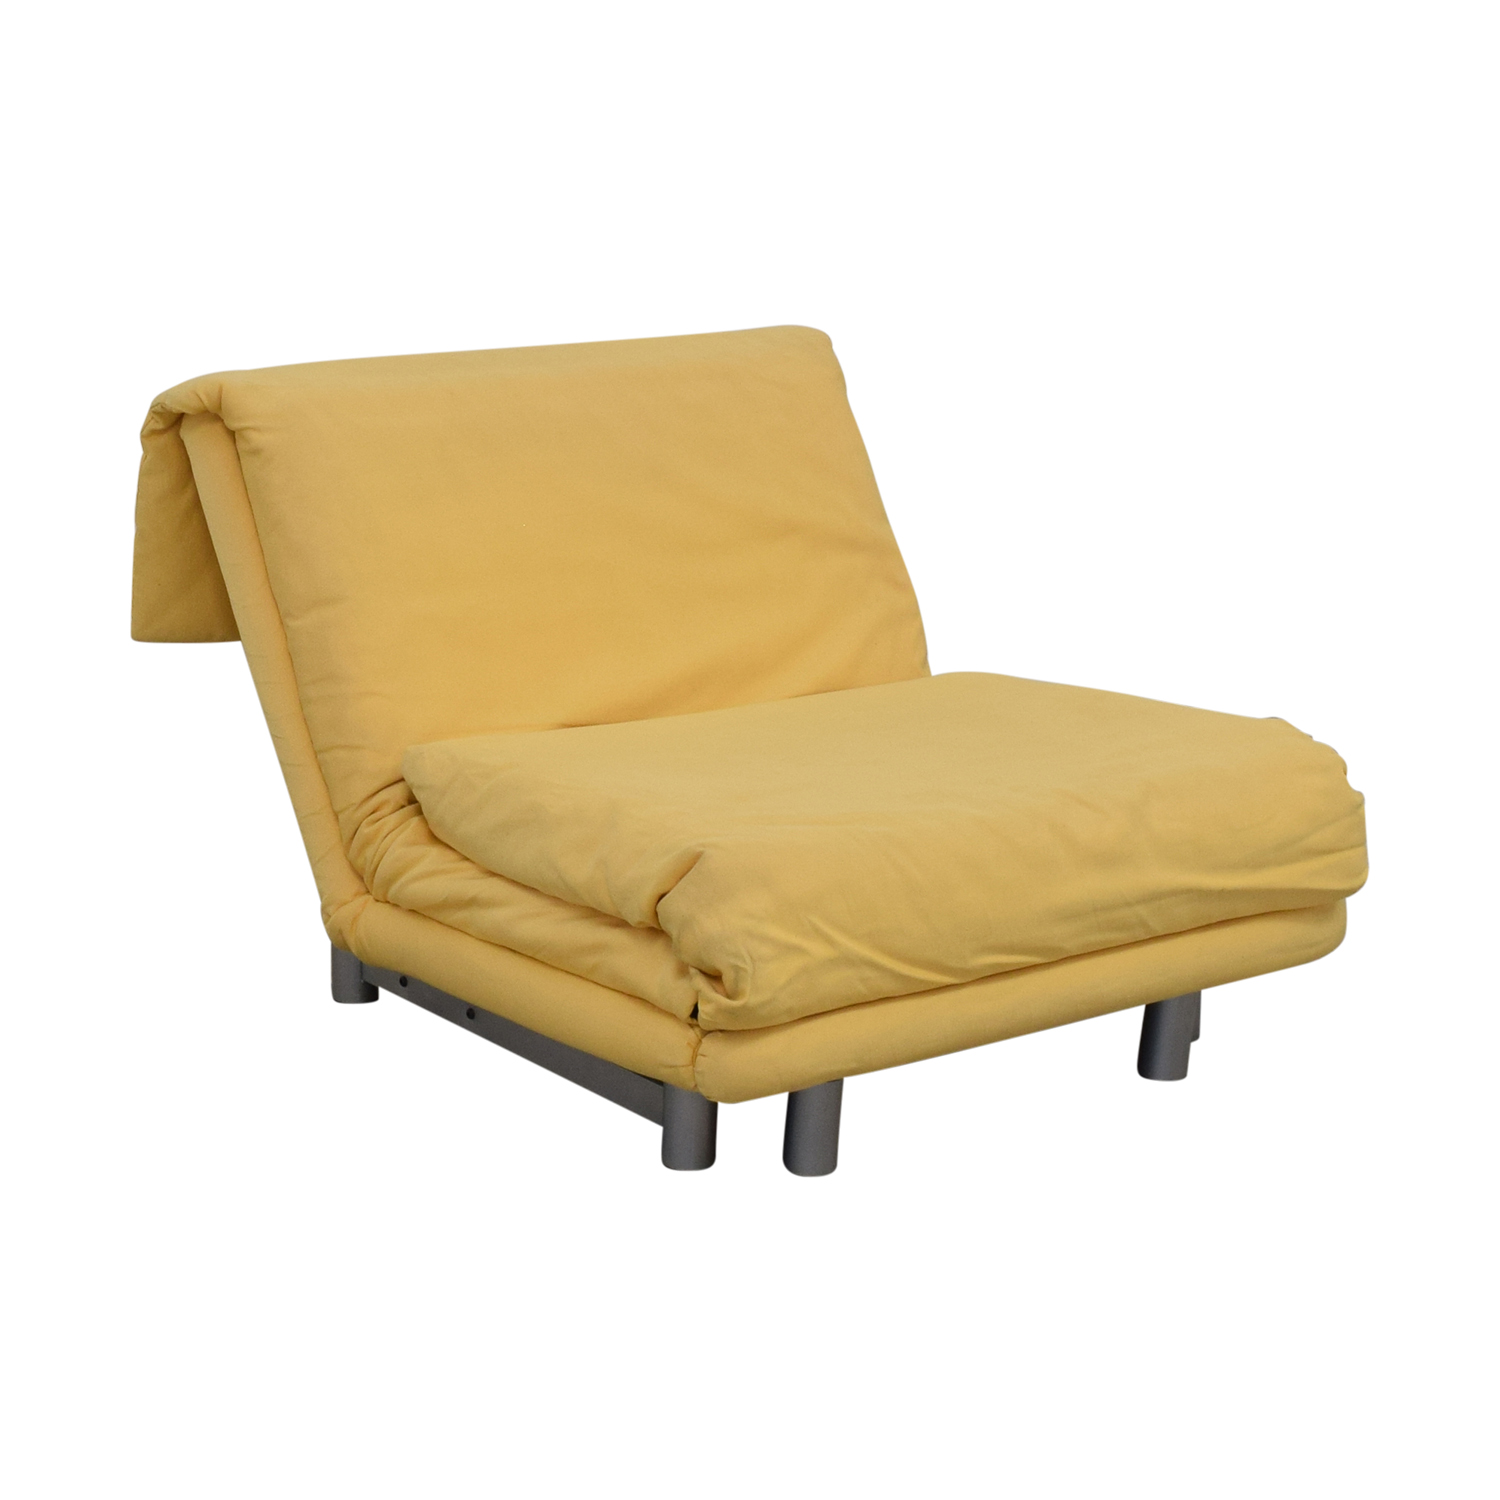 Ligne Roset Ligne Roset Multy Lounge Chair nj